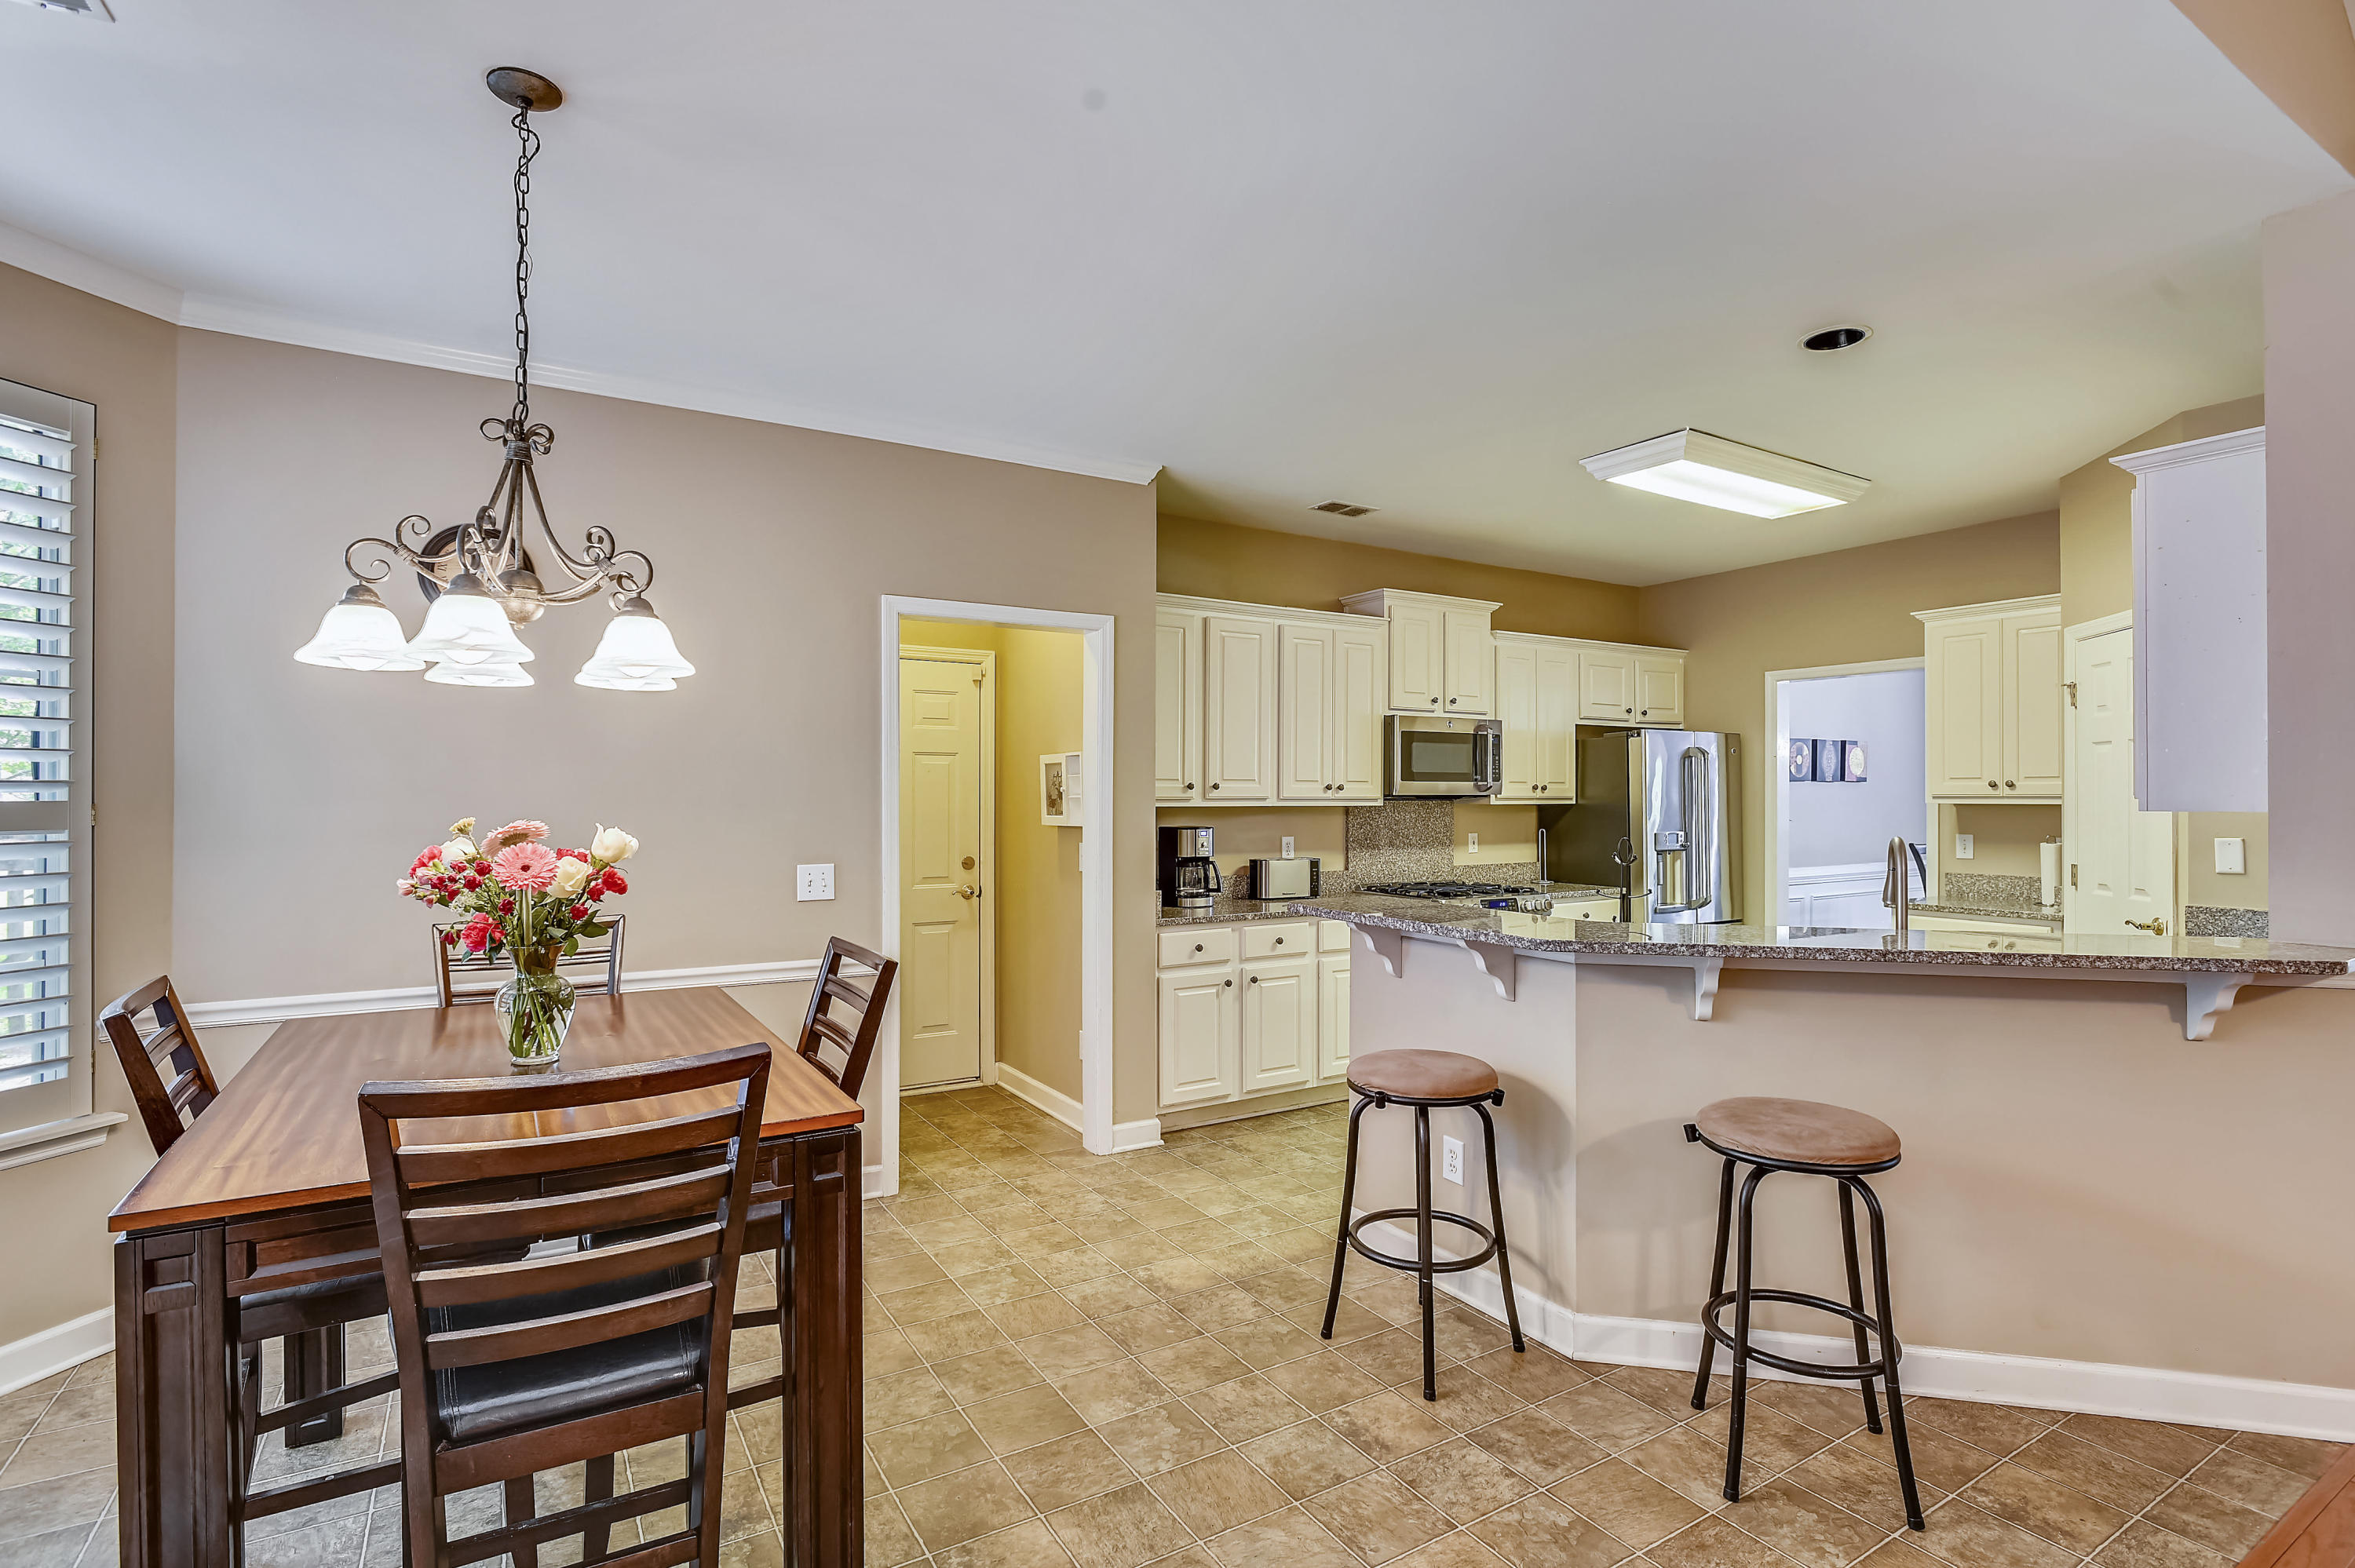 Dunes West Homes For Sale - 2137 Tall Grass, Mount Pleasant, SC - 15